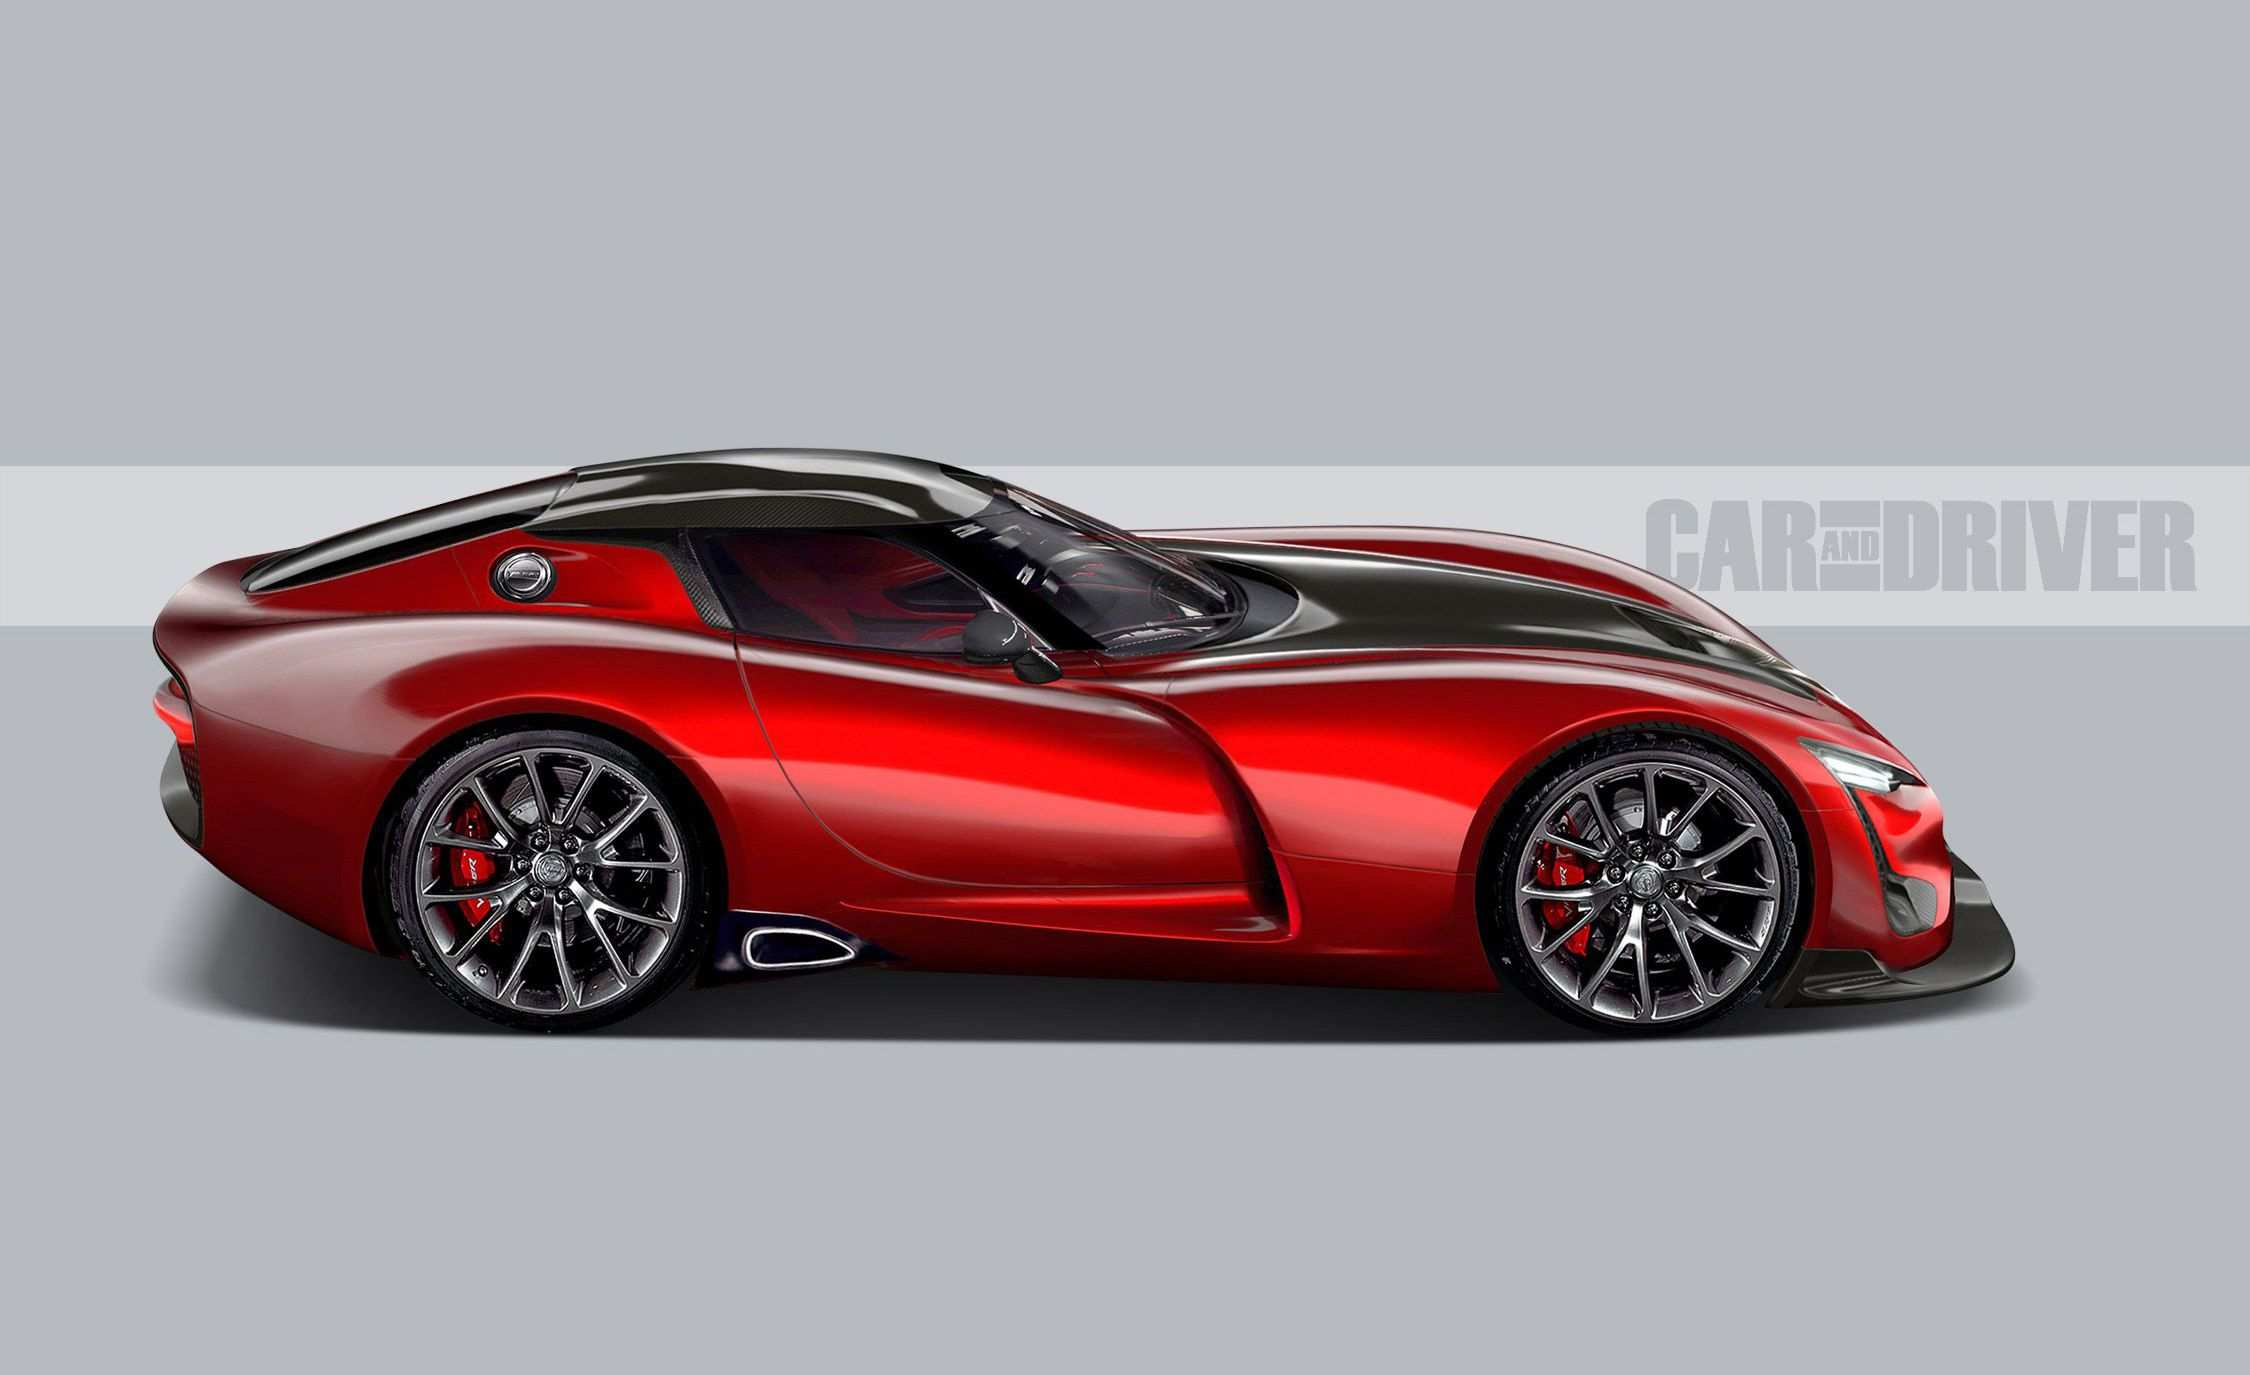 44 Gallery of 2019 Dodge Viper Acr Configurations with 2019 Dodge Viper Acr